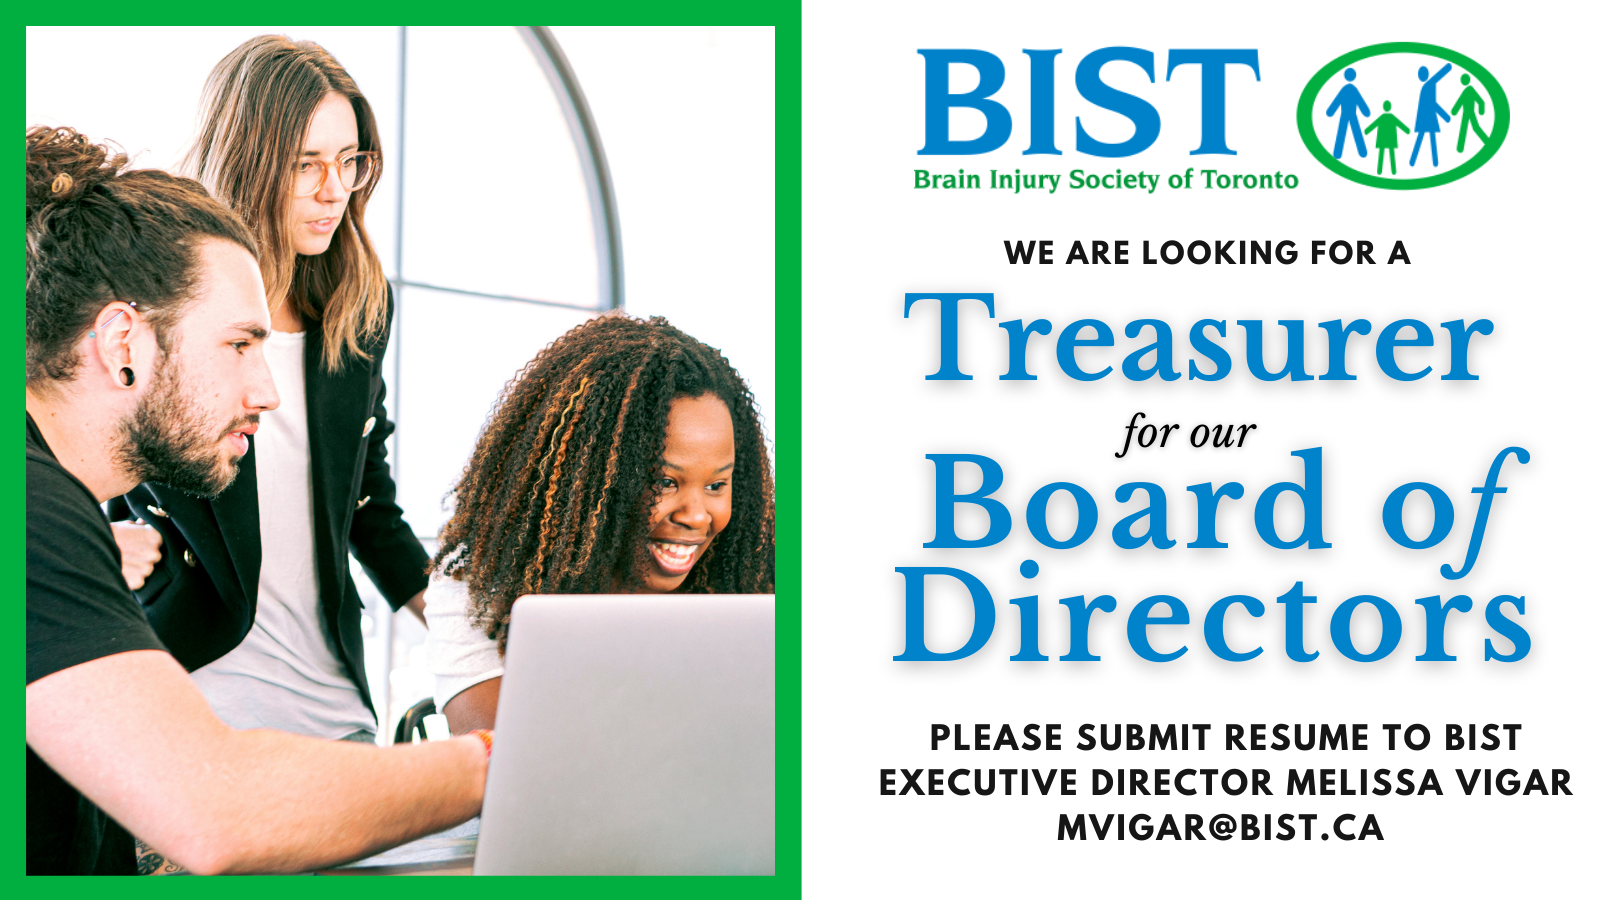 We are looking for a treasurer for our board of directors